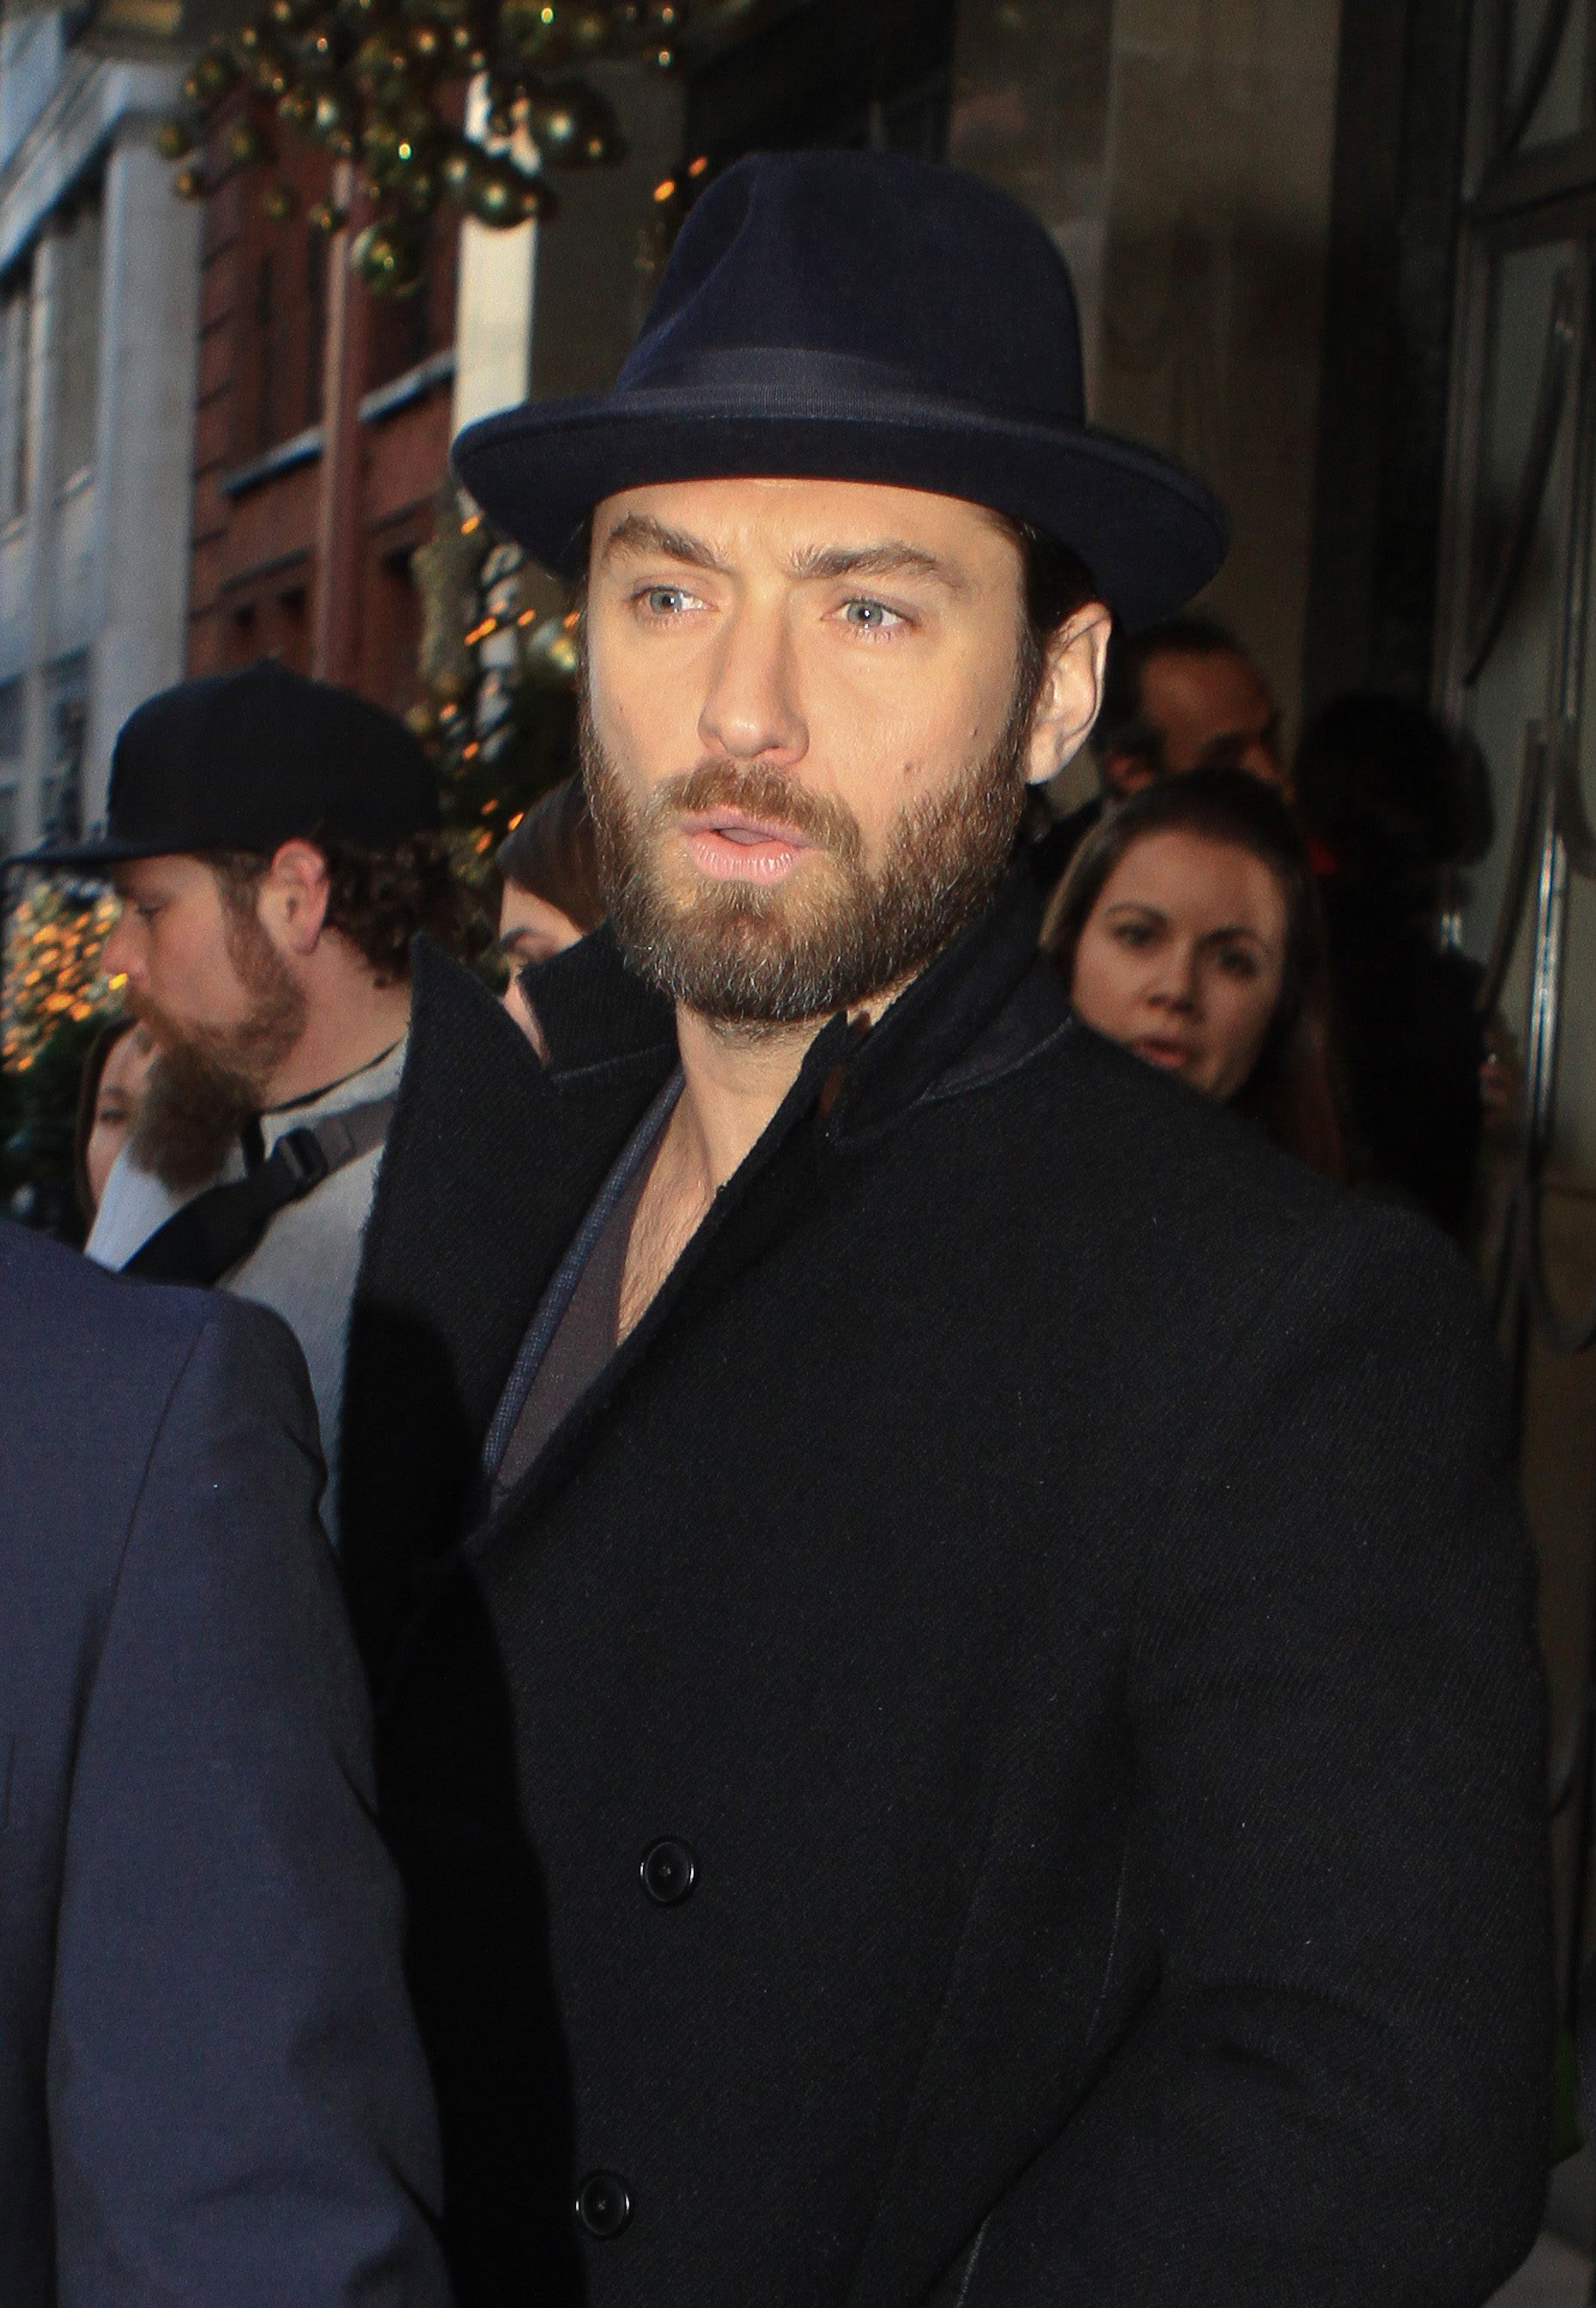 What To Do With Old Car Seats >> Yea or nay: Jude Law's new beard - Today's Parent